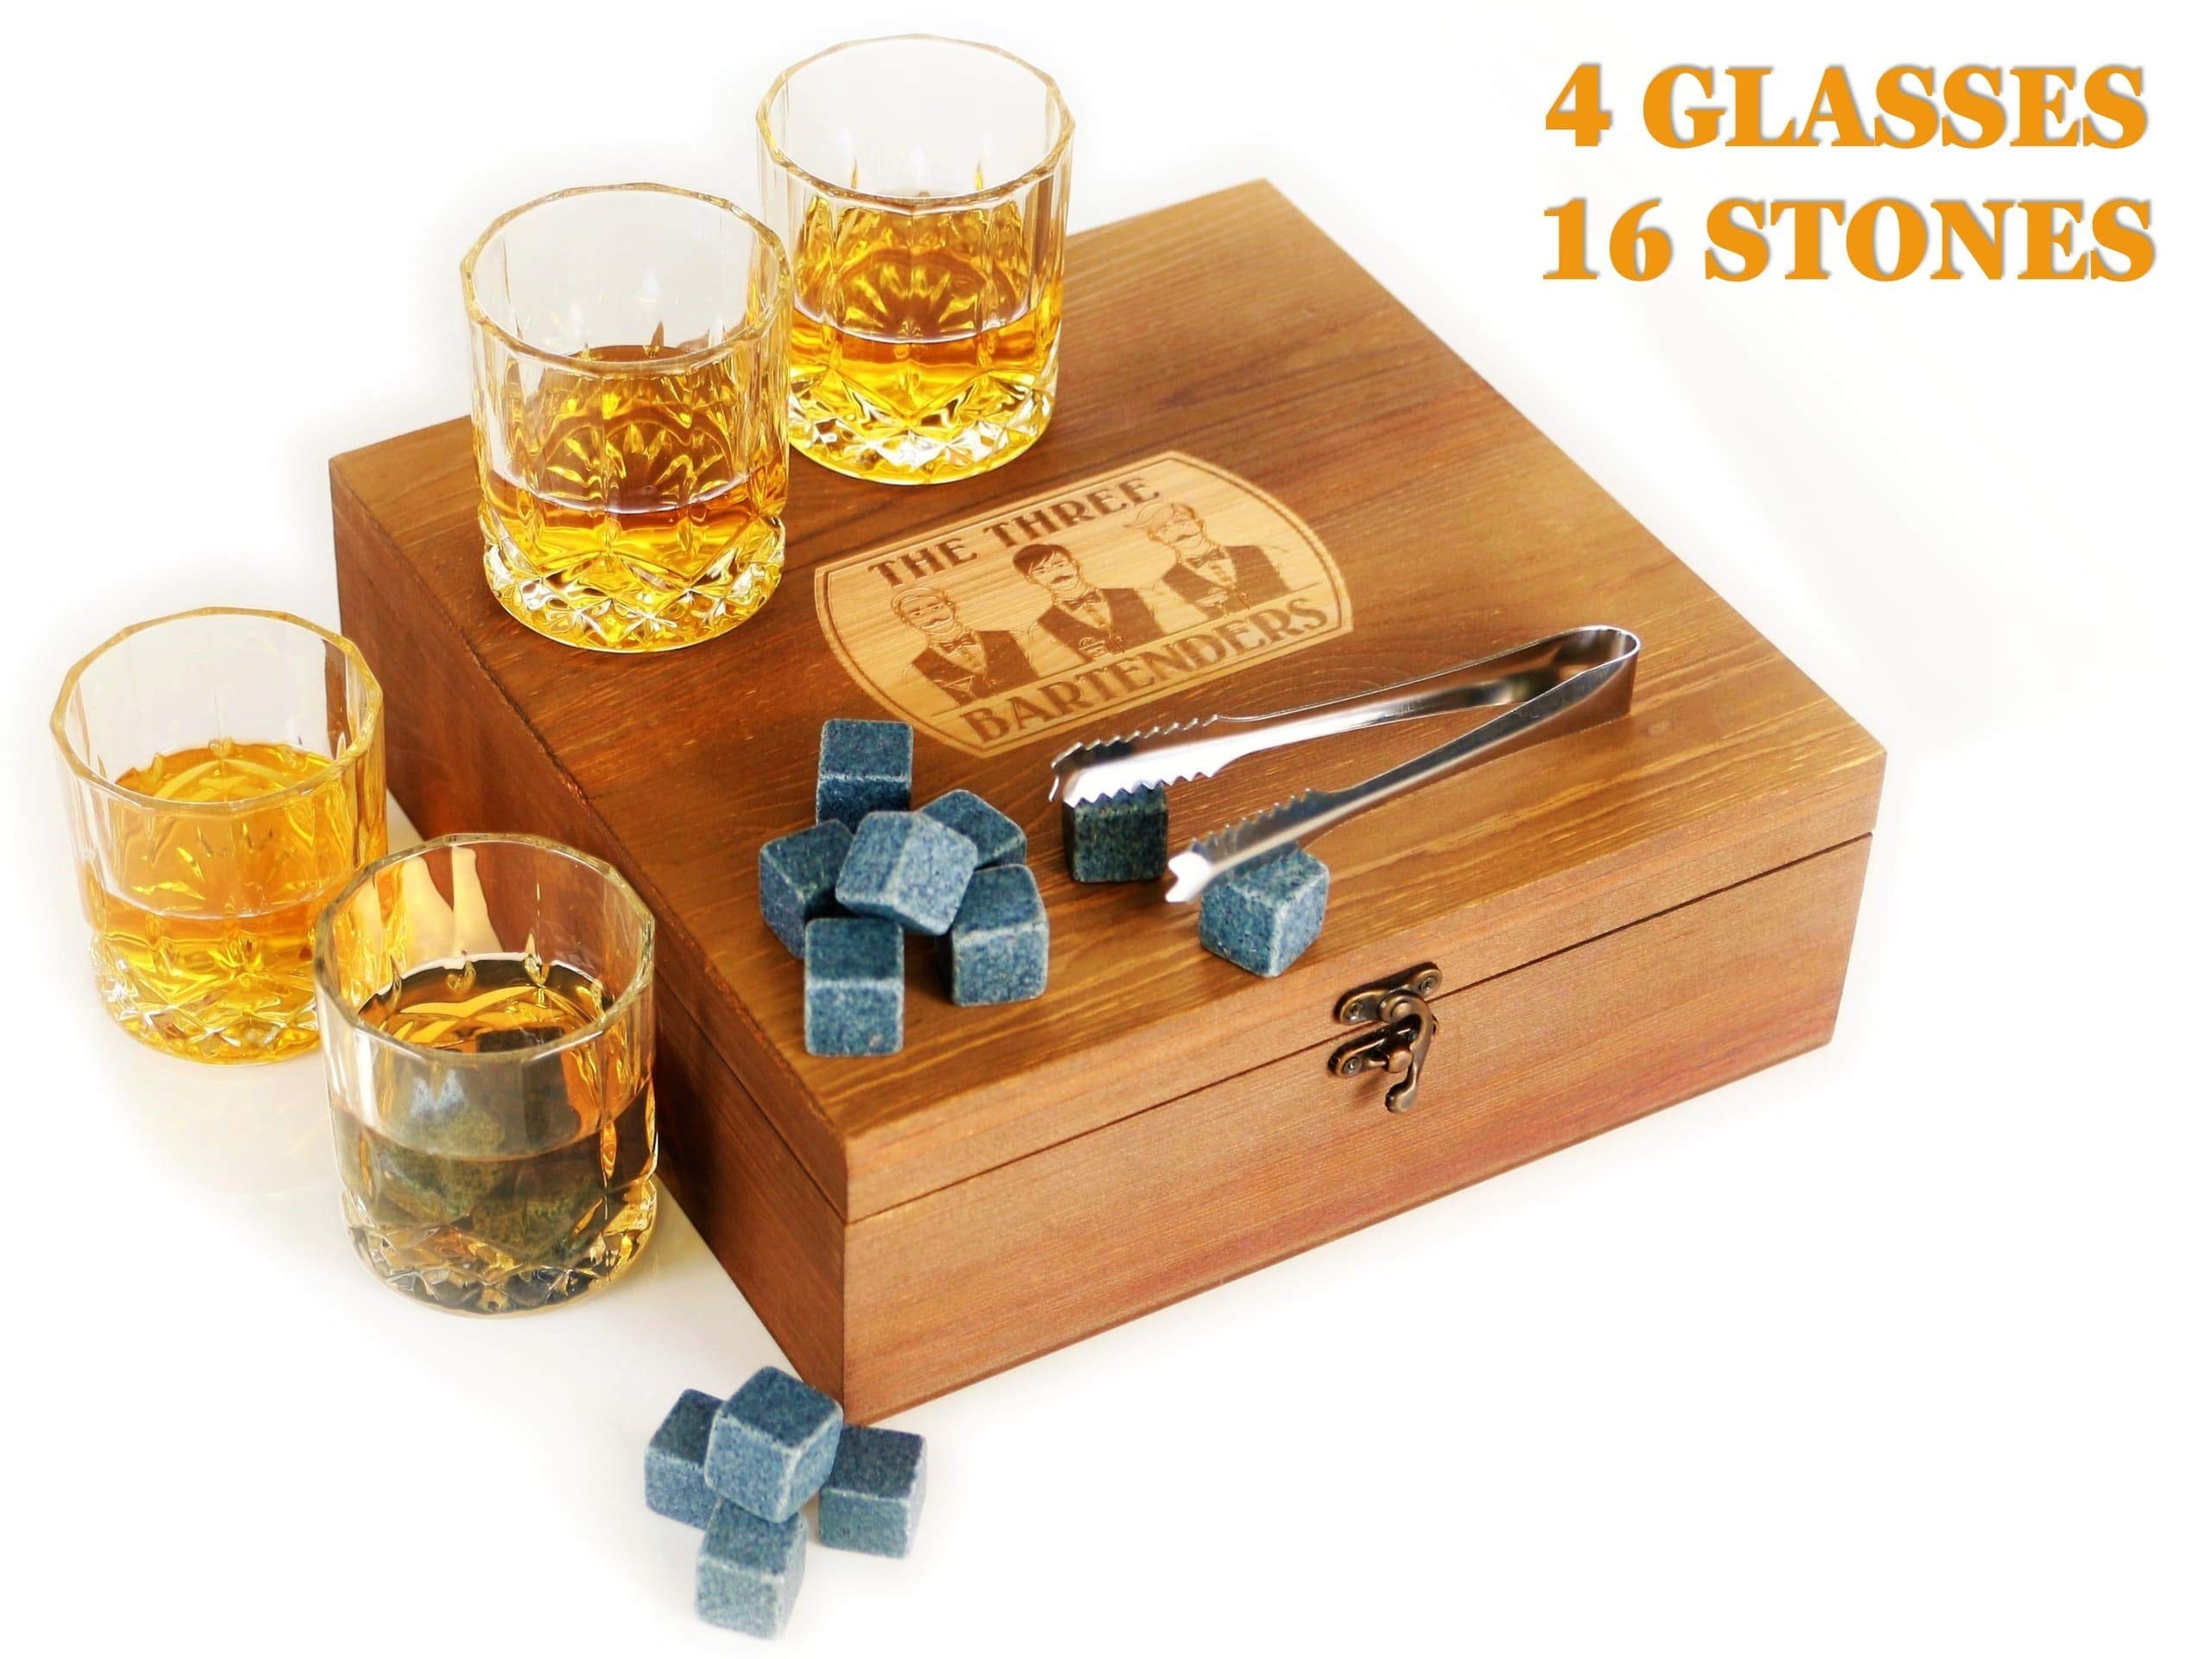 Whiskey Glasses and Stones Gift Set in Premium Wooden Presentation Box - 4 Extra Large Glasses, 16 Chilling Stones, Ideal Gift for Men, Fathers Day, Brother Gift (7.7)